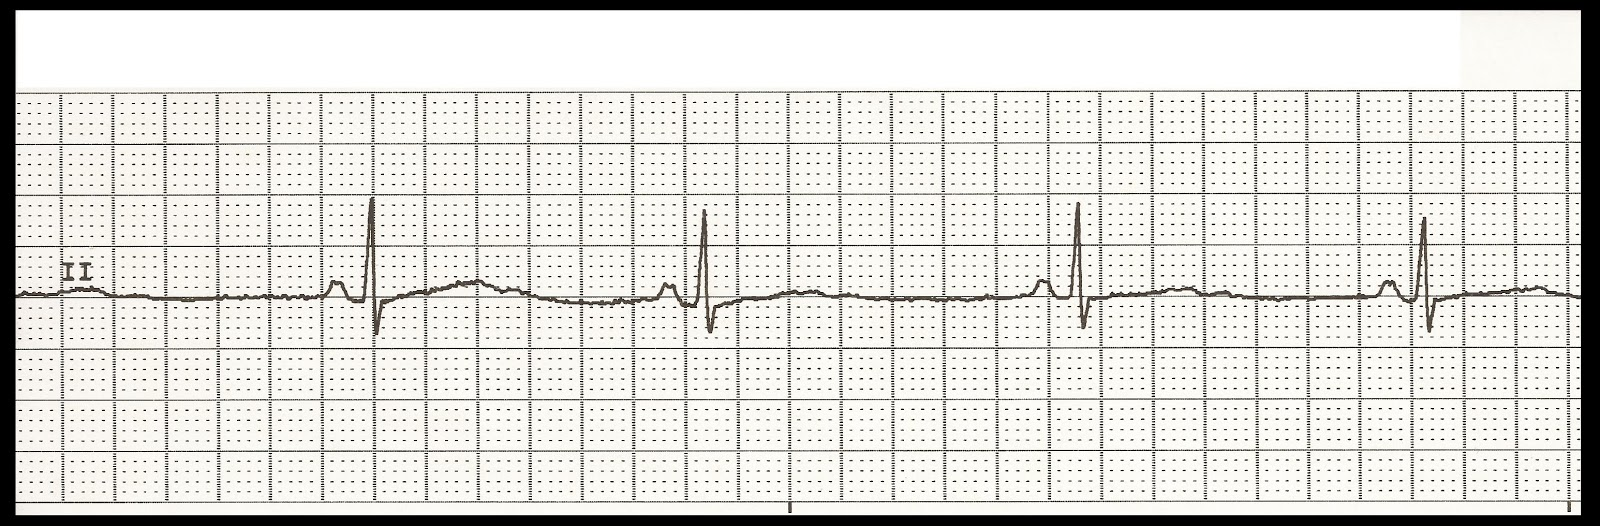 ecg rhythm strip